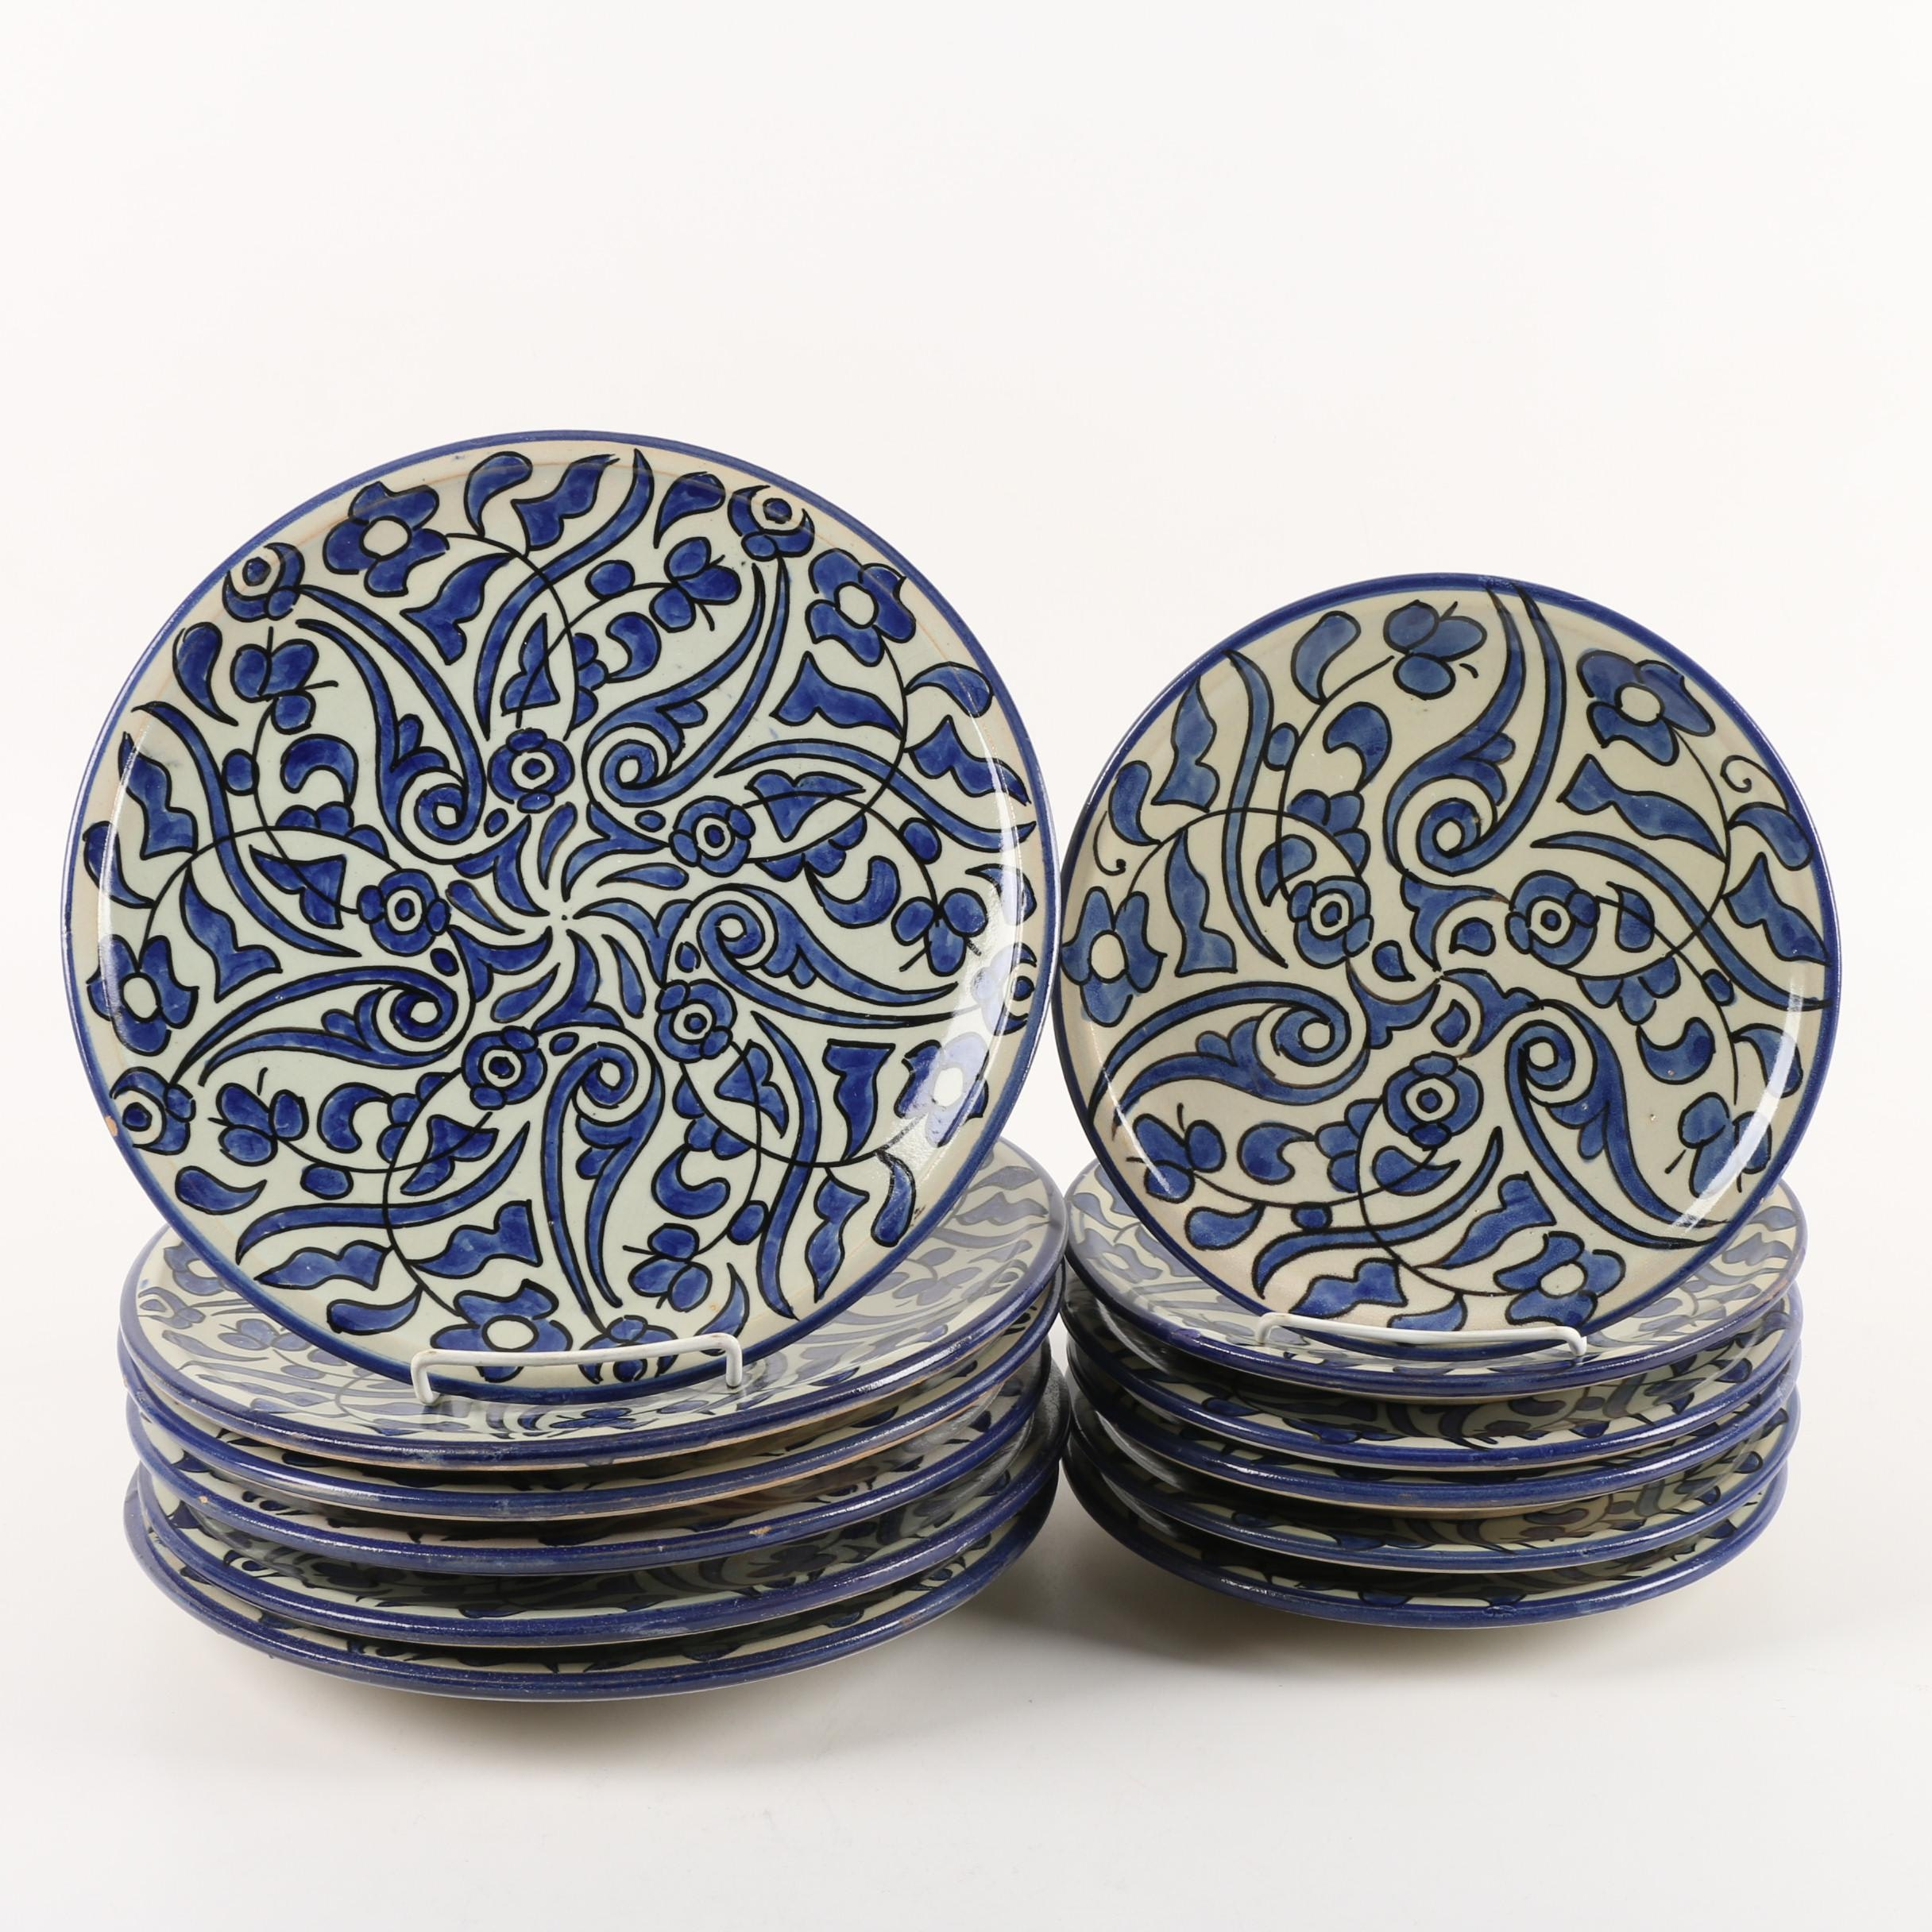 Moroccan  Hand-Painted Ceramic Dinner and Salad Plates for Six